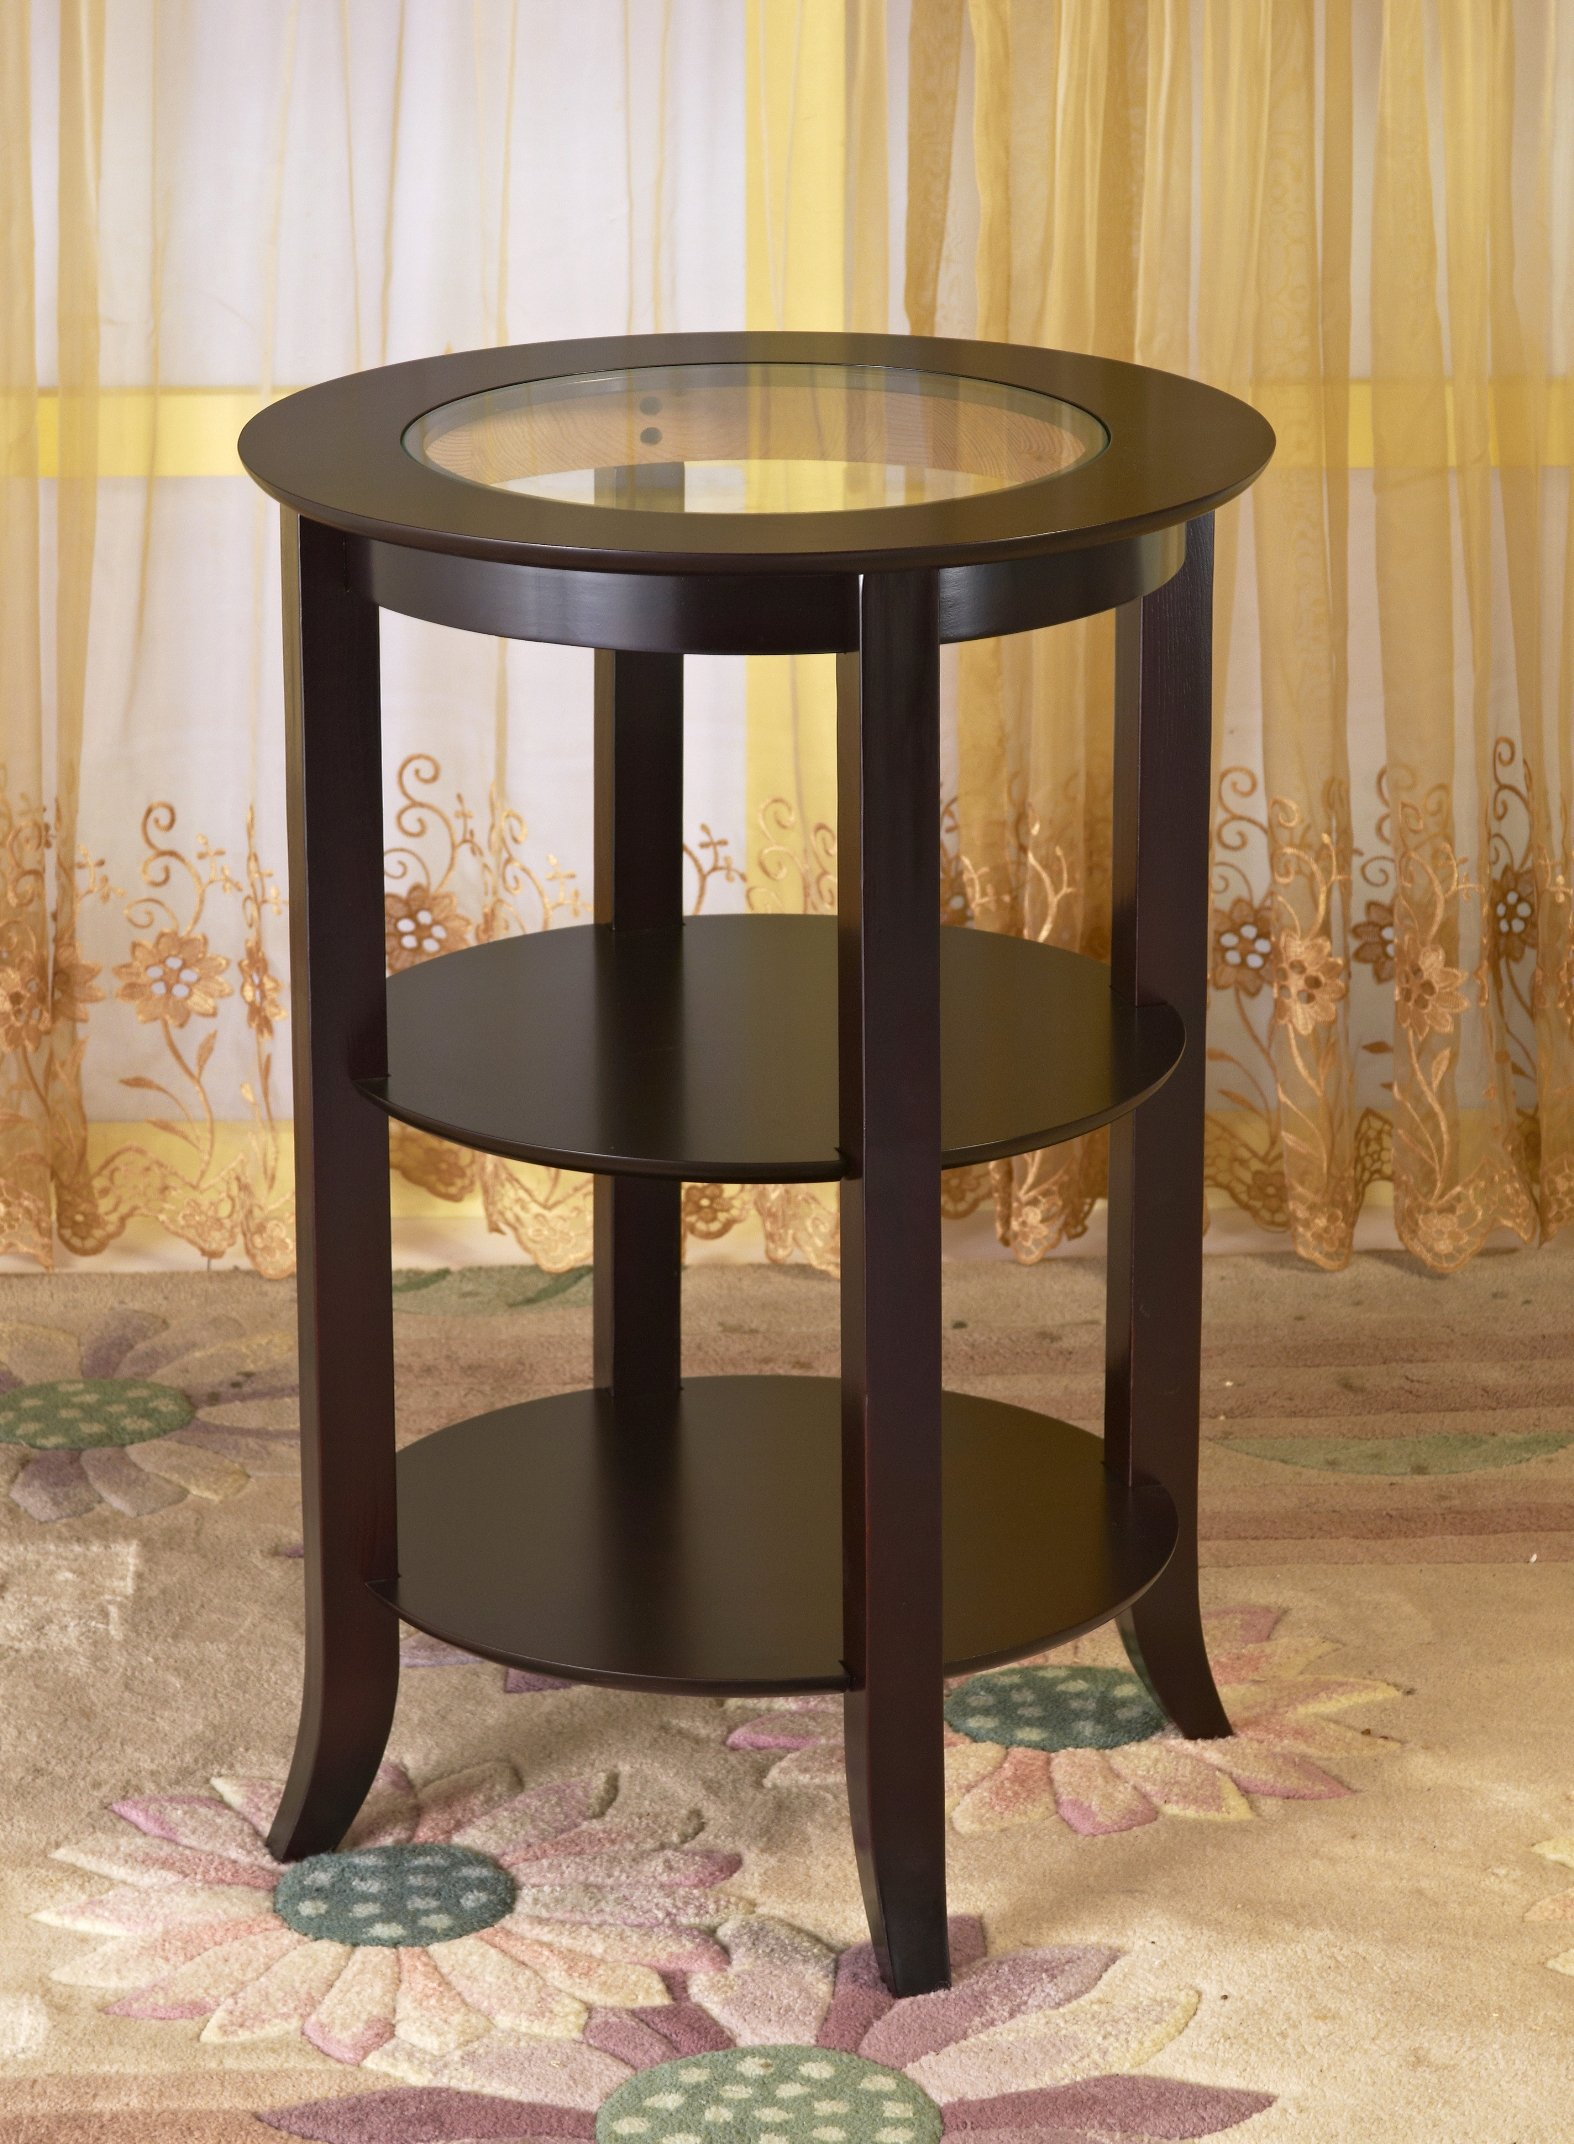 Frenchi Furniture Wood Round Side /Accent Table , Inset Glass, Two Shelves by Frenchi Home Furnishing (Image #2)